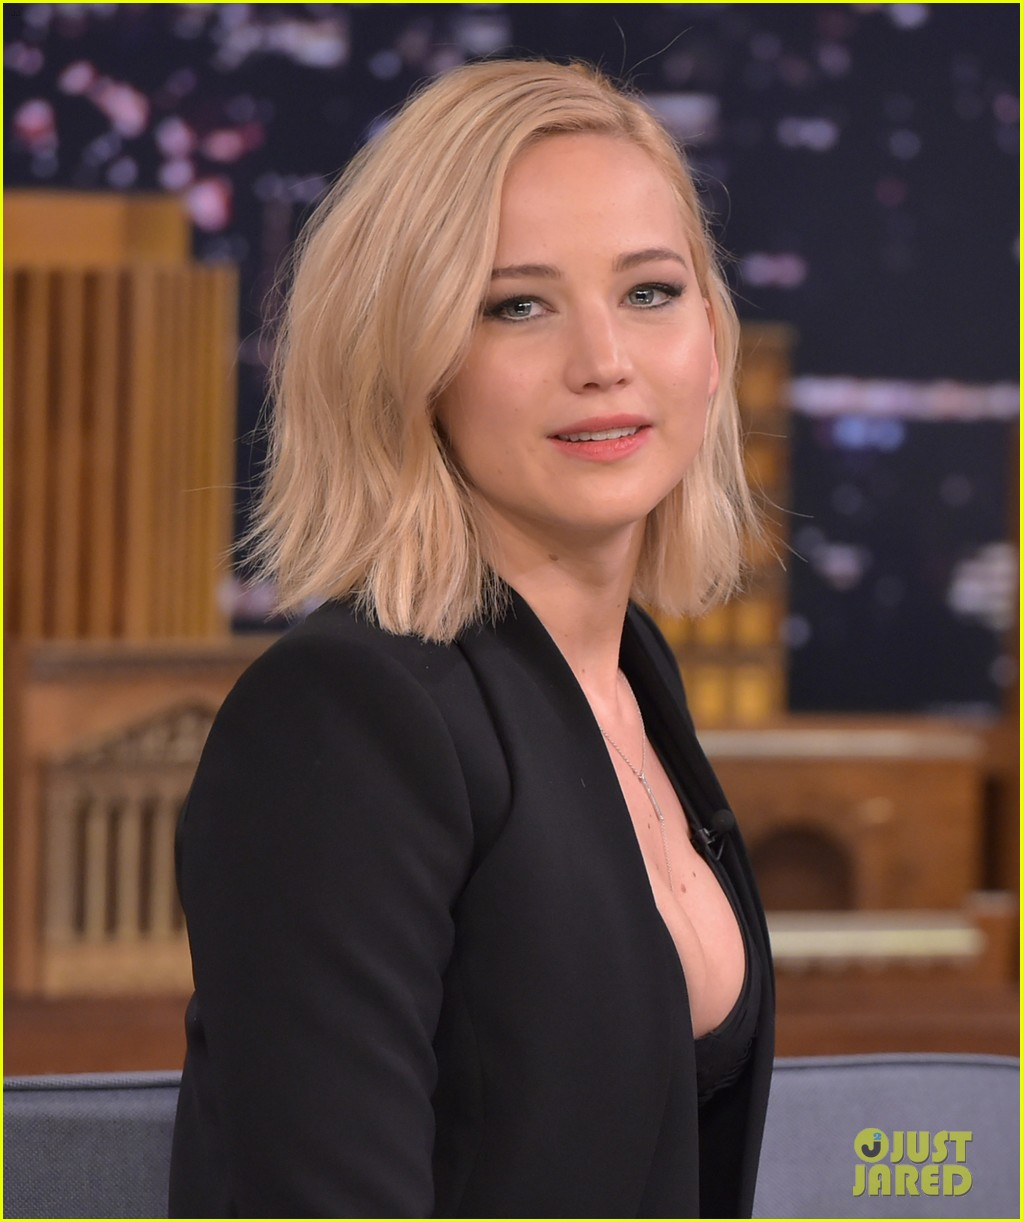 Jennifer lawrence wore the craziest outfit ever on fallon photo jennifer lawrence wore the craziest outfit ever on fallon voltagebd Image collections